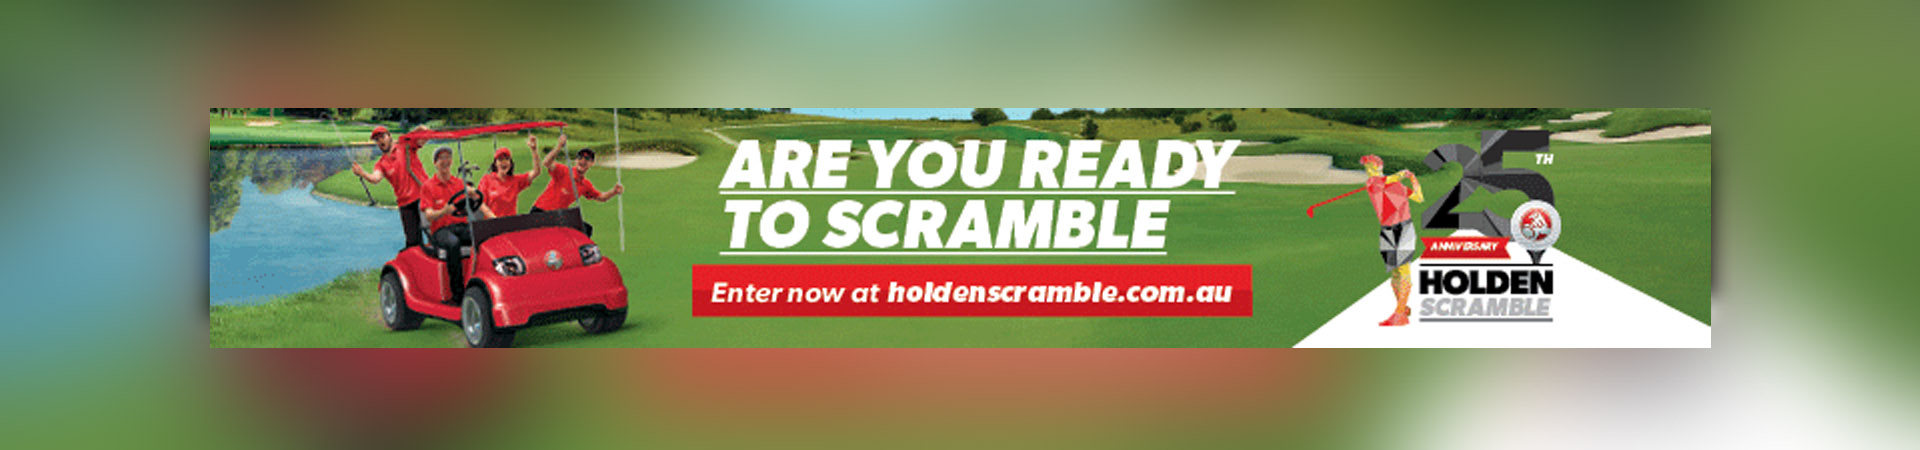 Holden-Scramble-1080